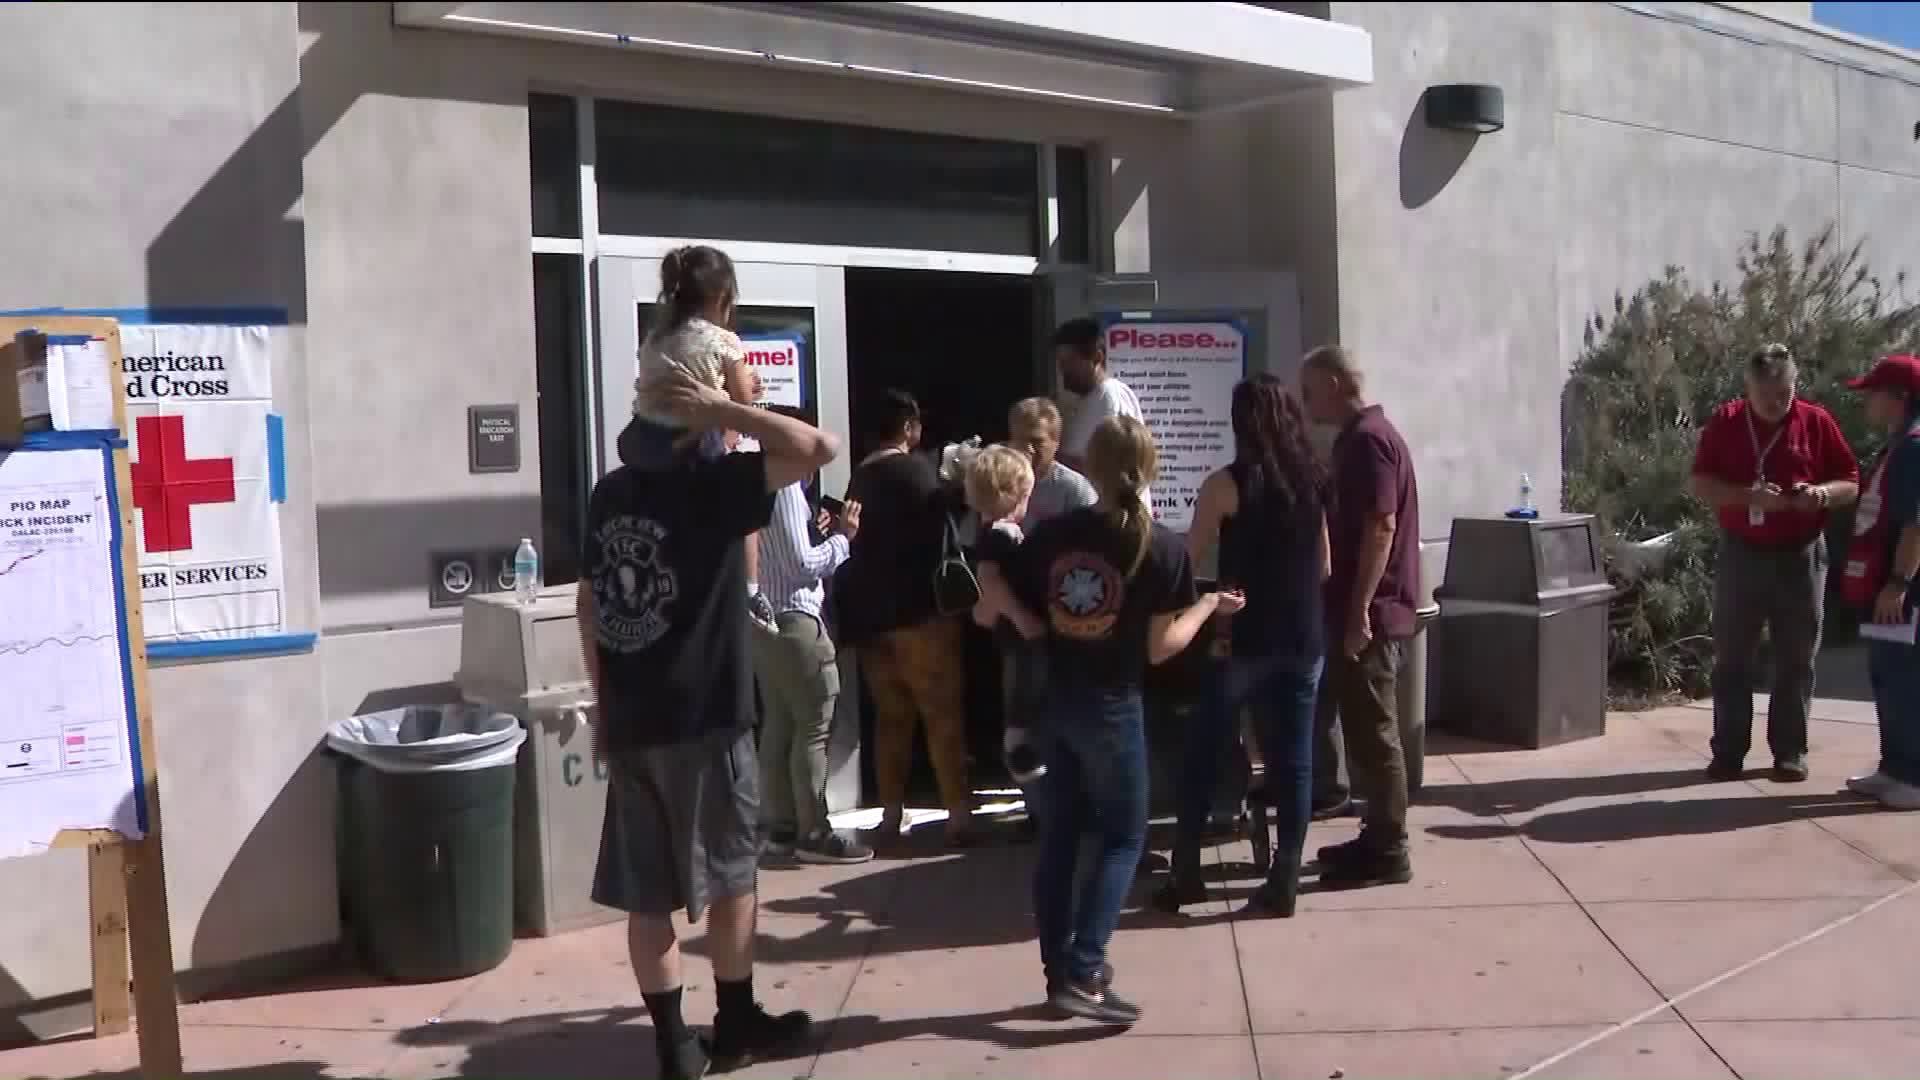 Residents flock to an evacuation center in Santa Clarita during the Tick Fire on Oct. 25, 2019. (Credit: KTLA)